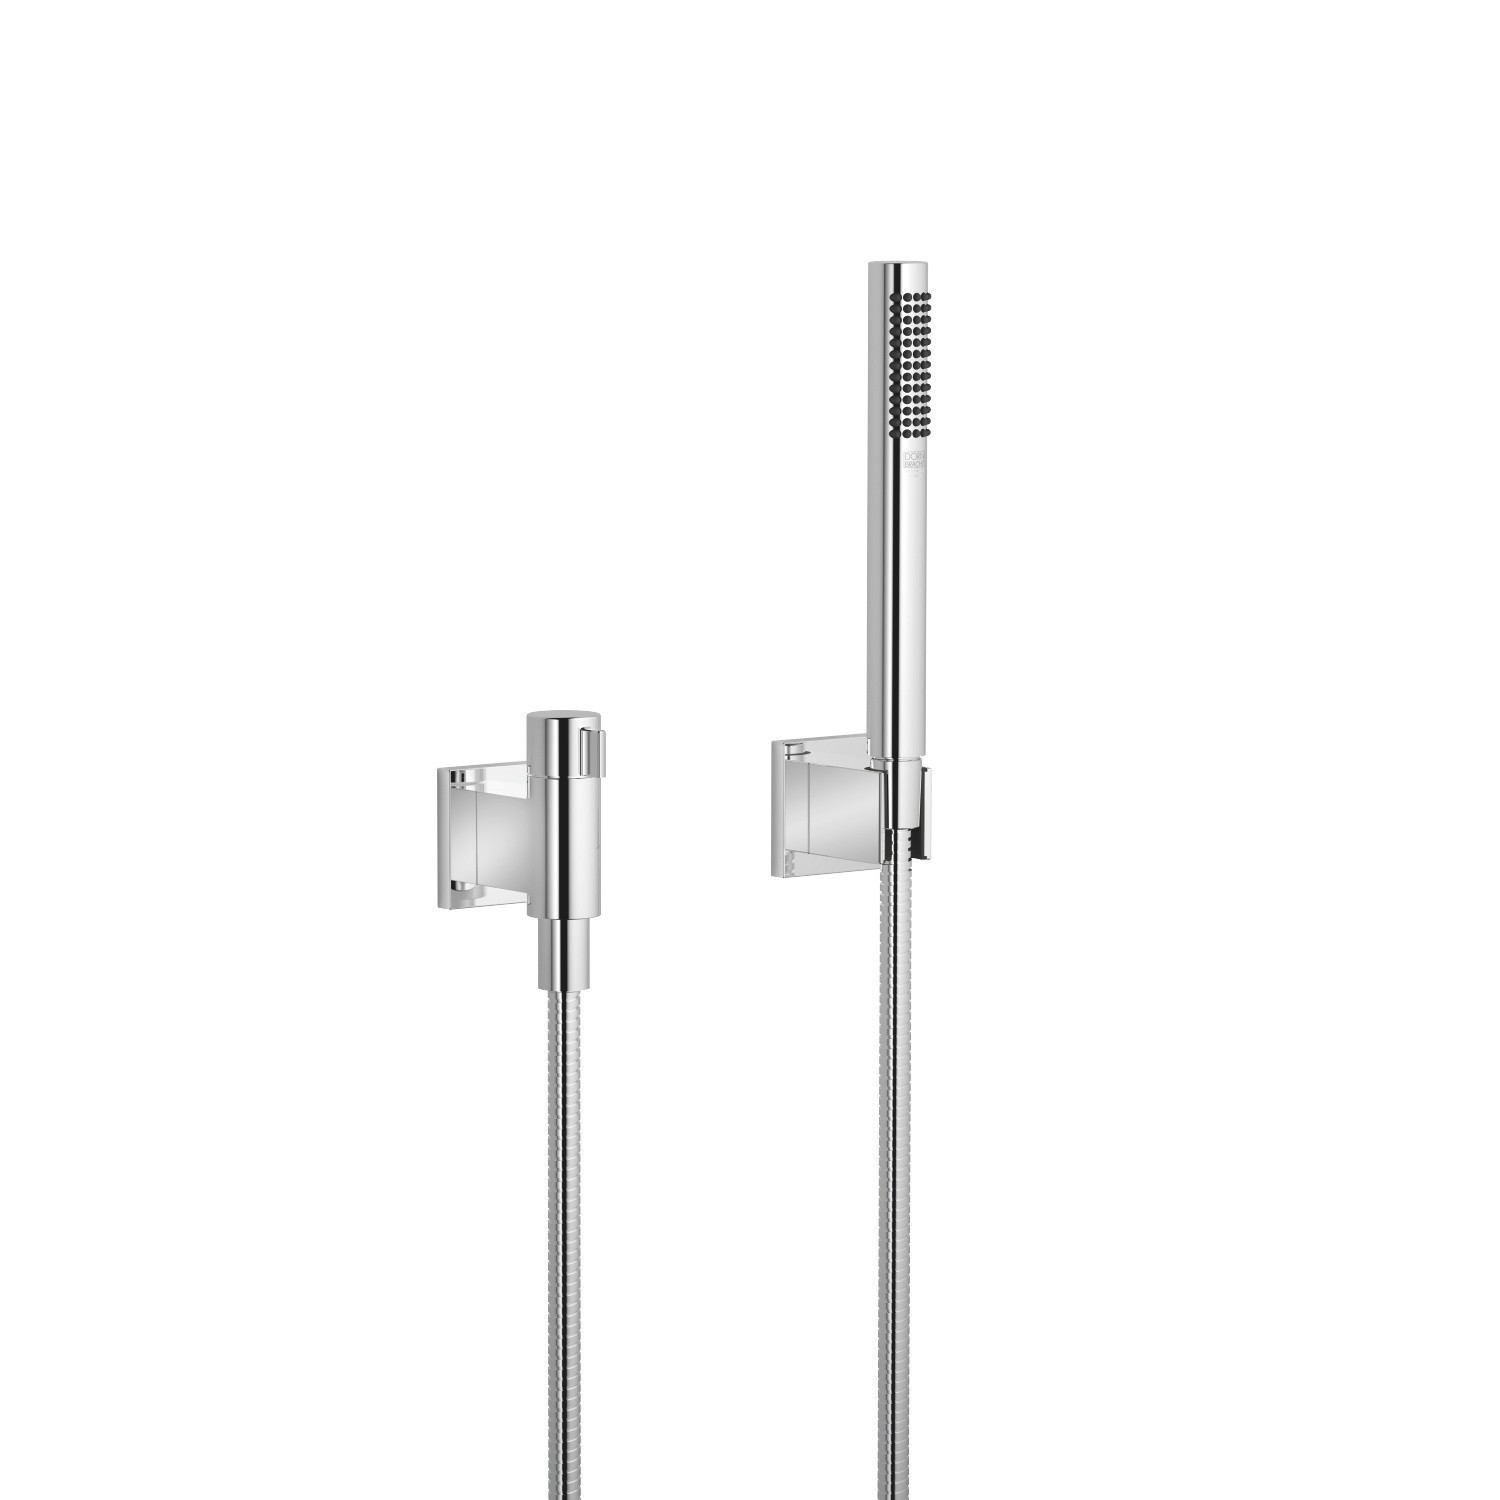 DORNBRACHT 27809985-0010 SYMETRICS WALL MOUNT SINGLE-FUNCTION ROUND HAND SHOWER SET WITH INDIVIDUAL FLANGES AND VOLUME CONTROL